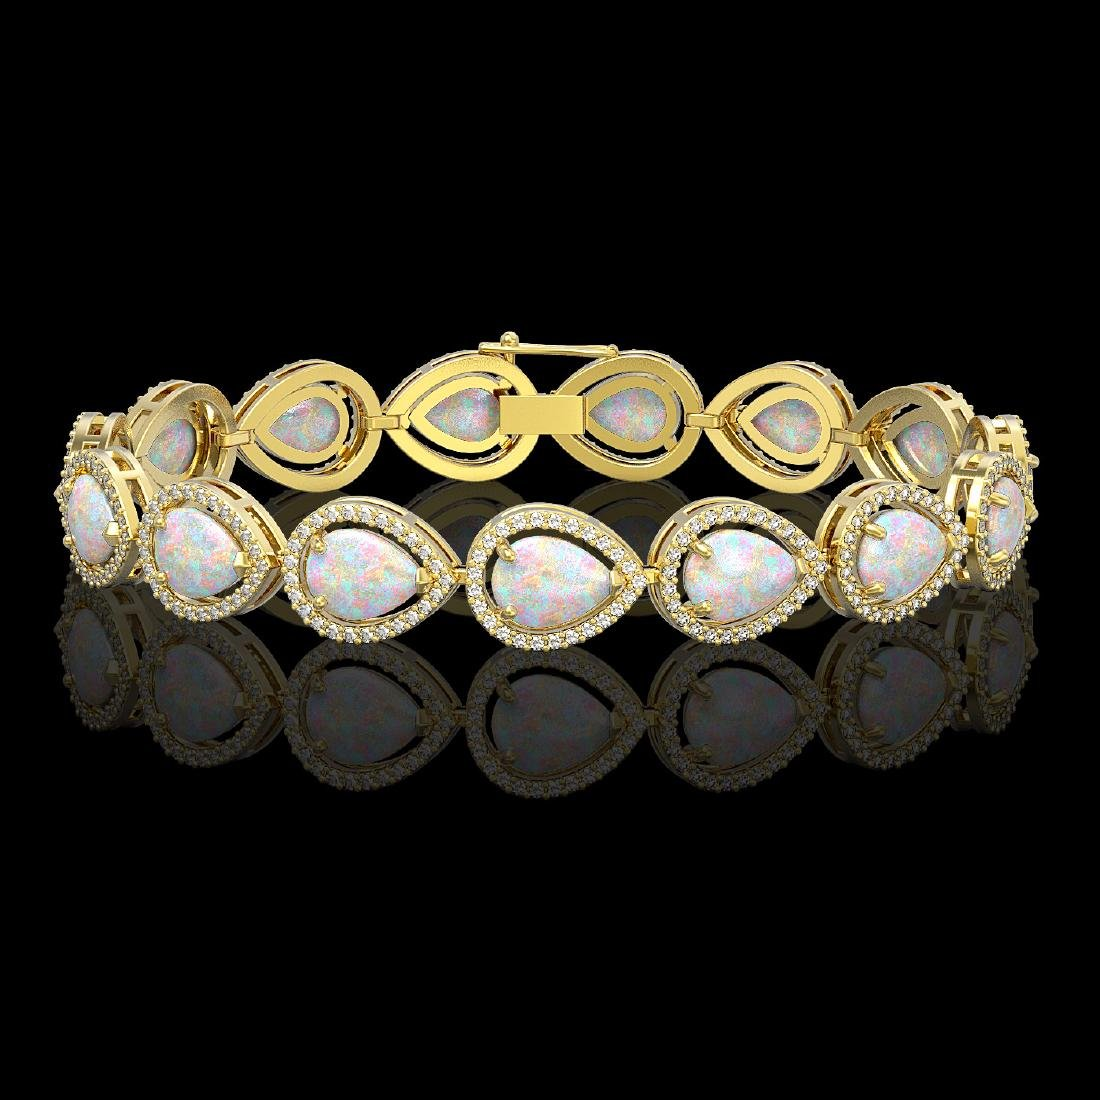 17.15 CTW Opal & Diamond Halo Bracelet 10K Yellow Gold